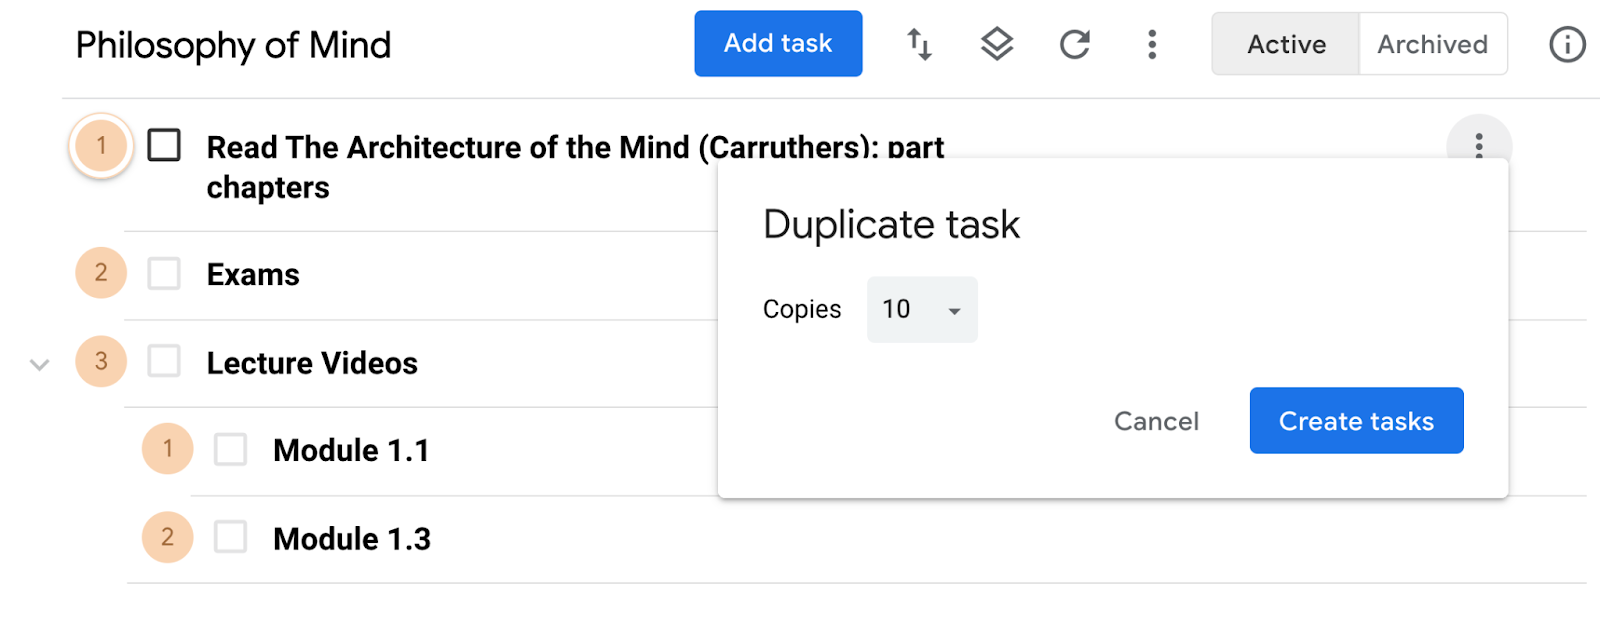 Duplicate one task many times